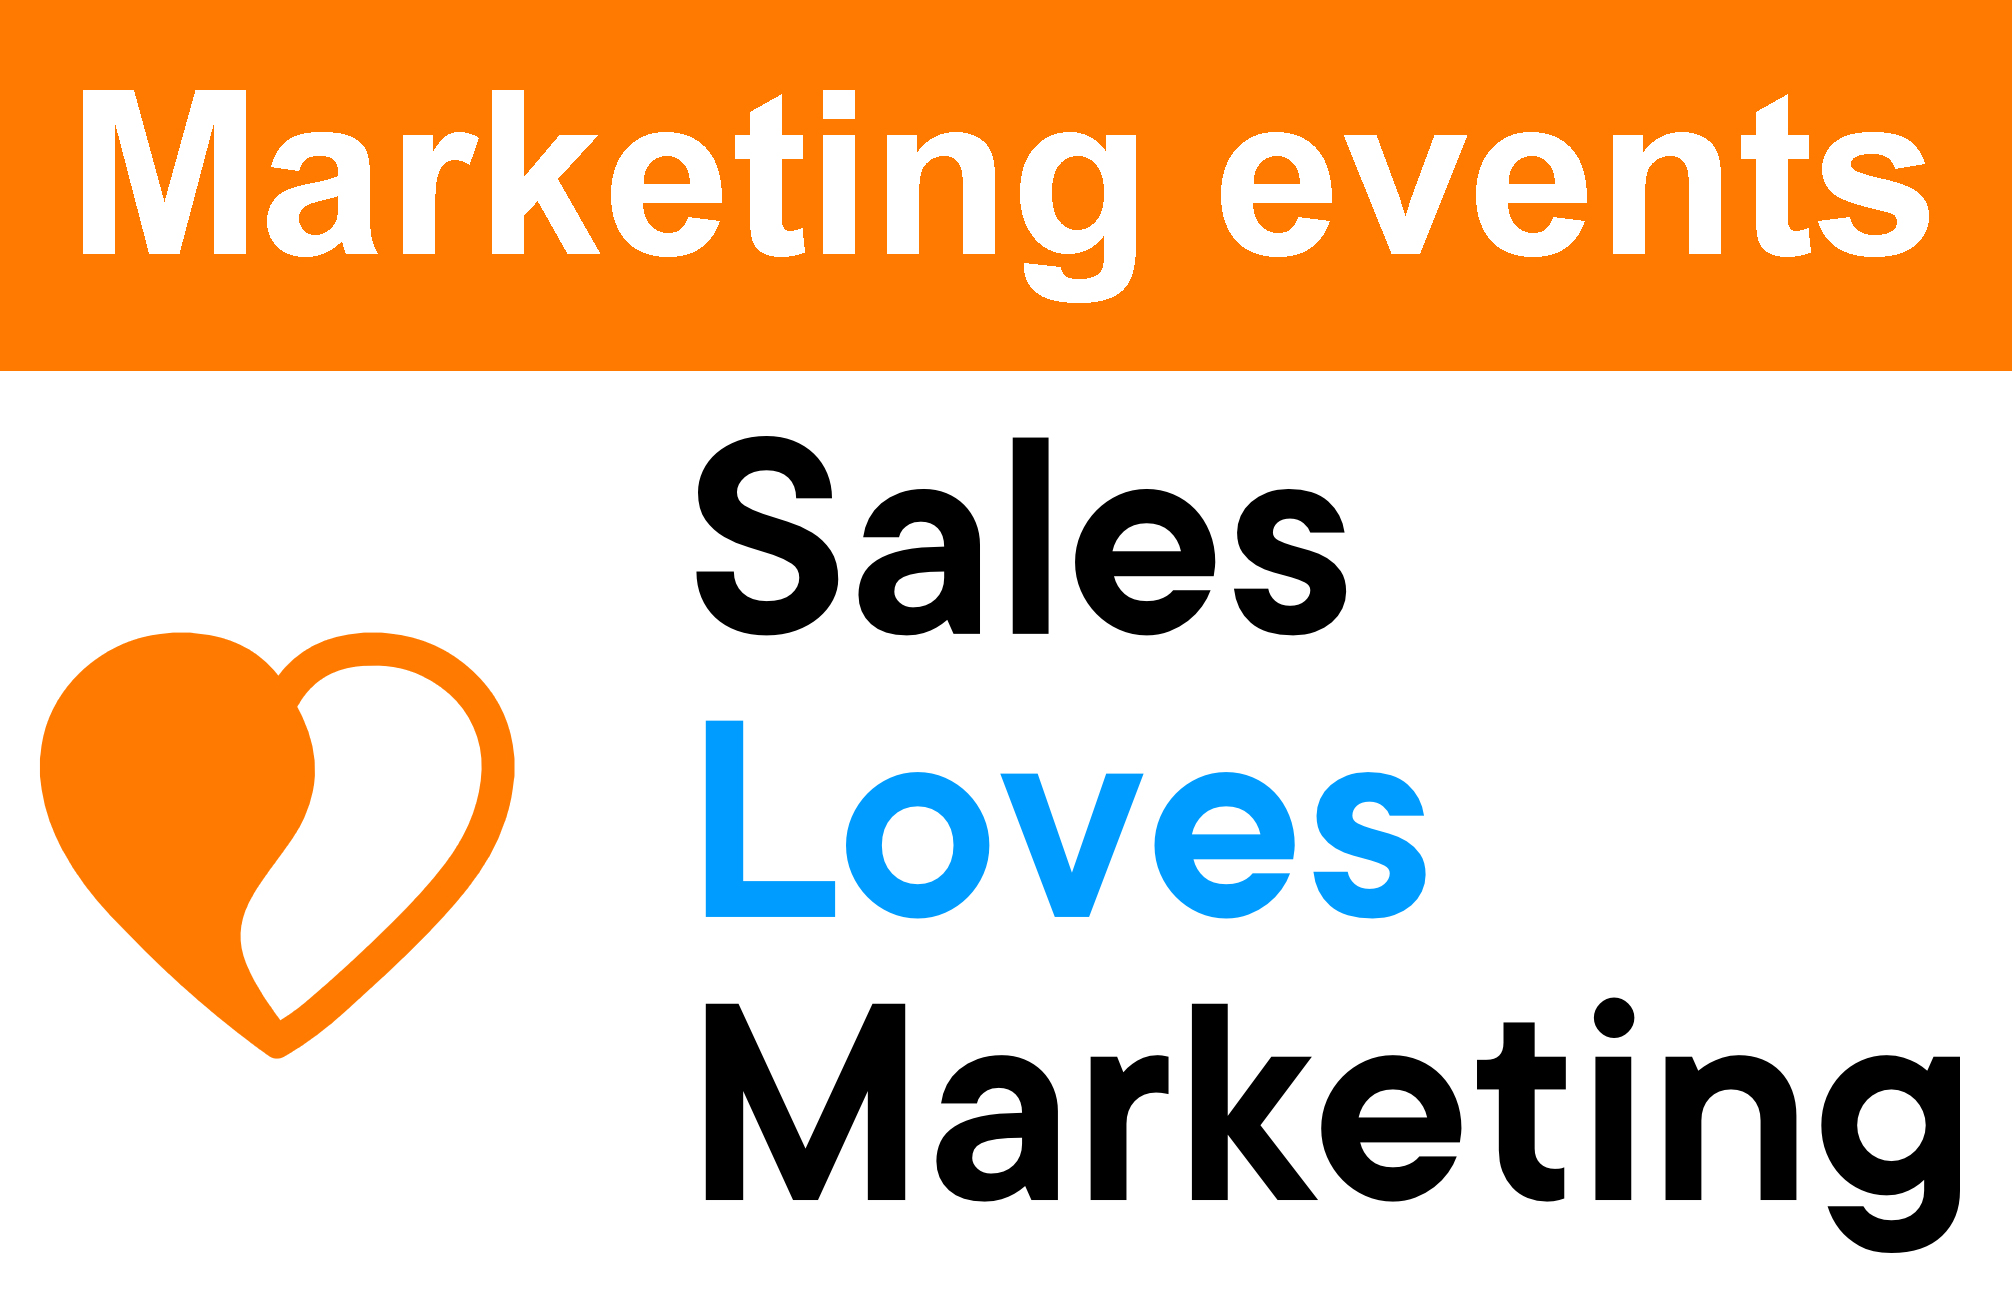 See all the big marketing events in one overview